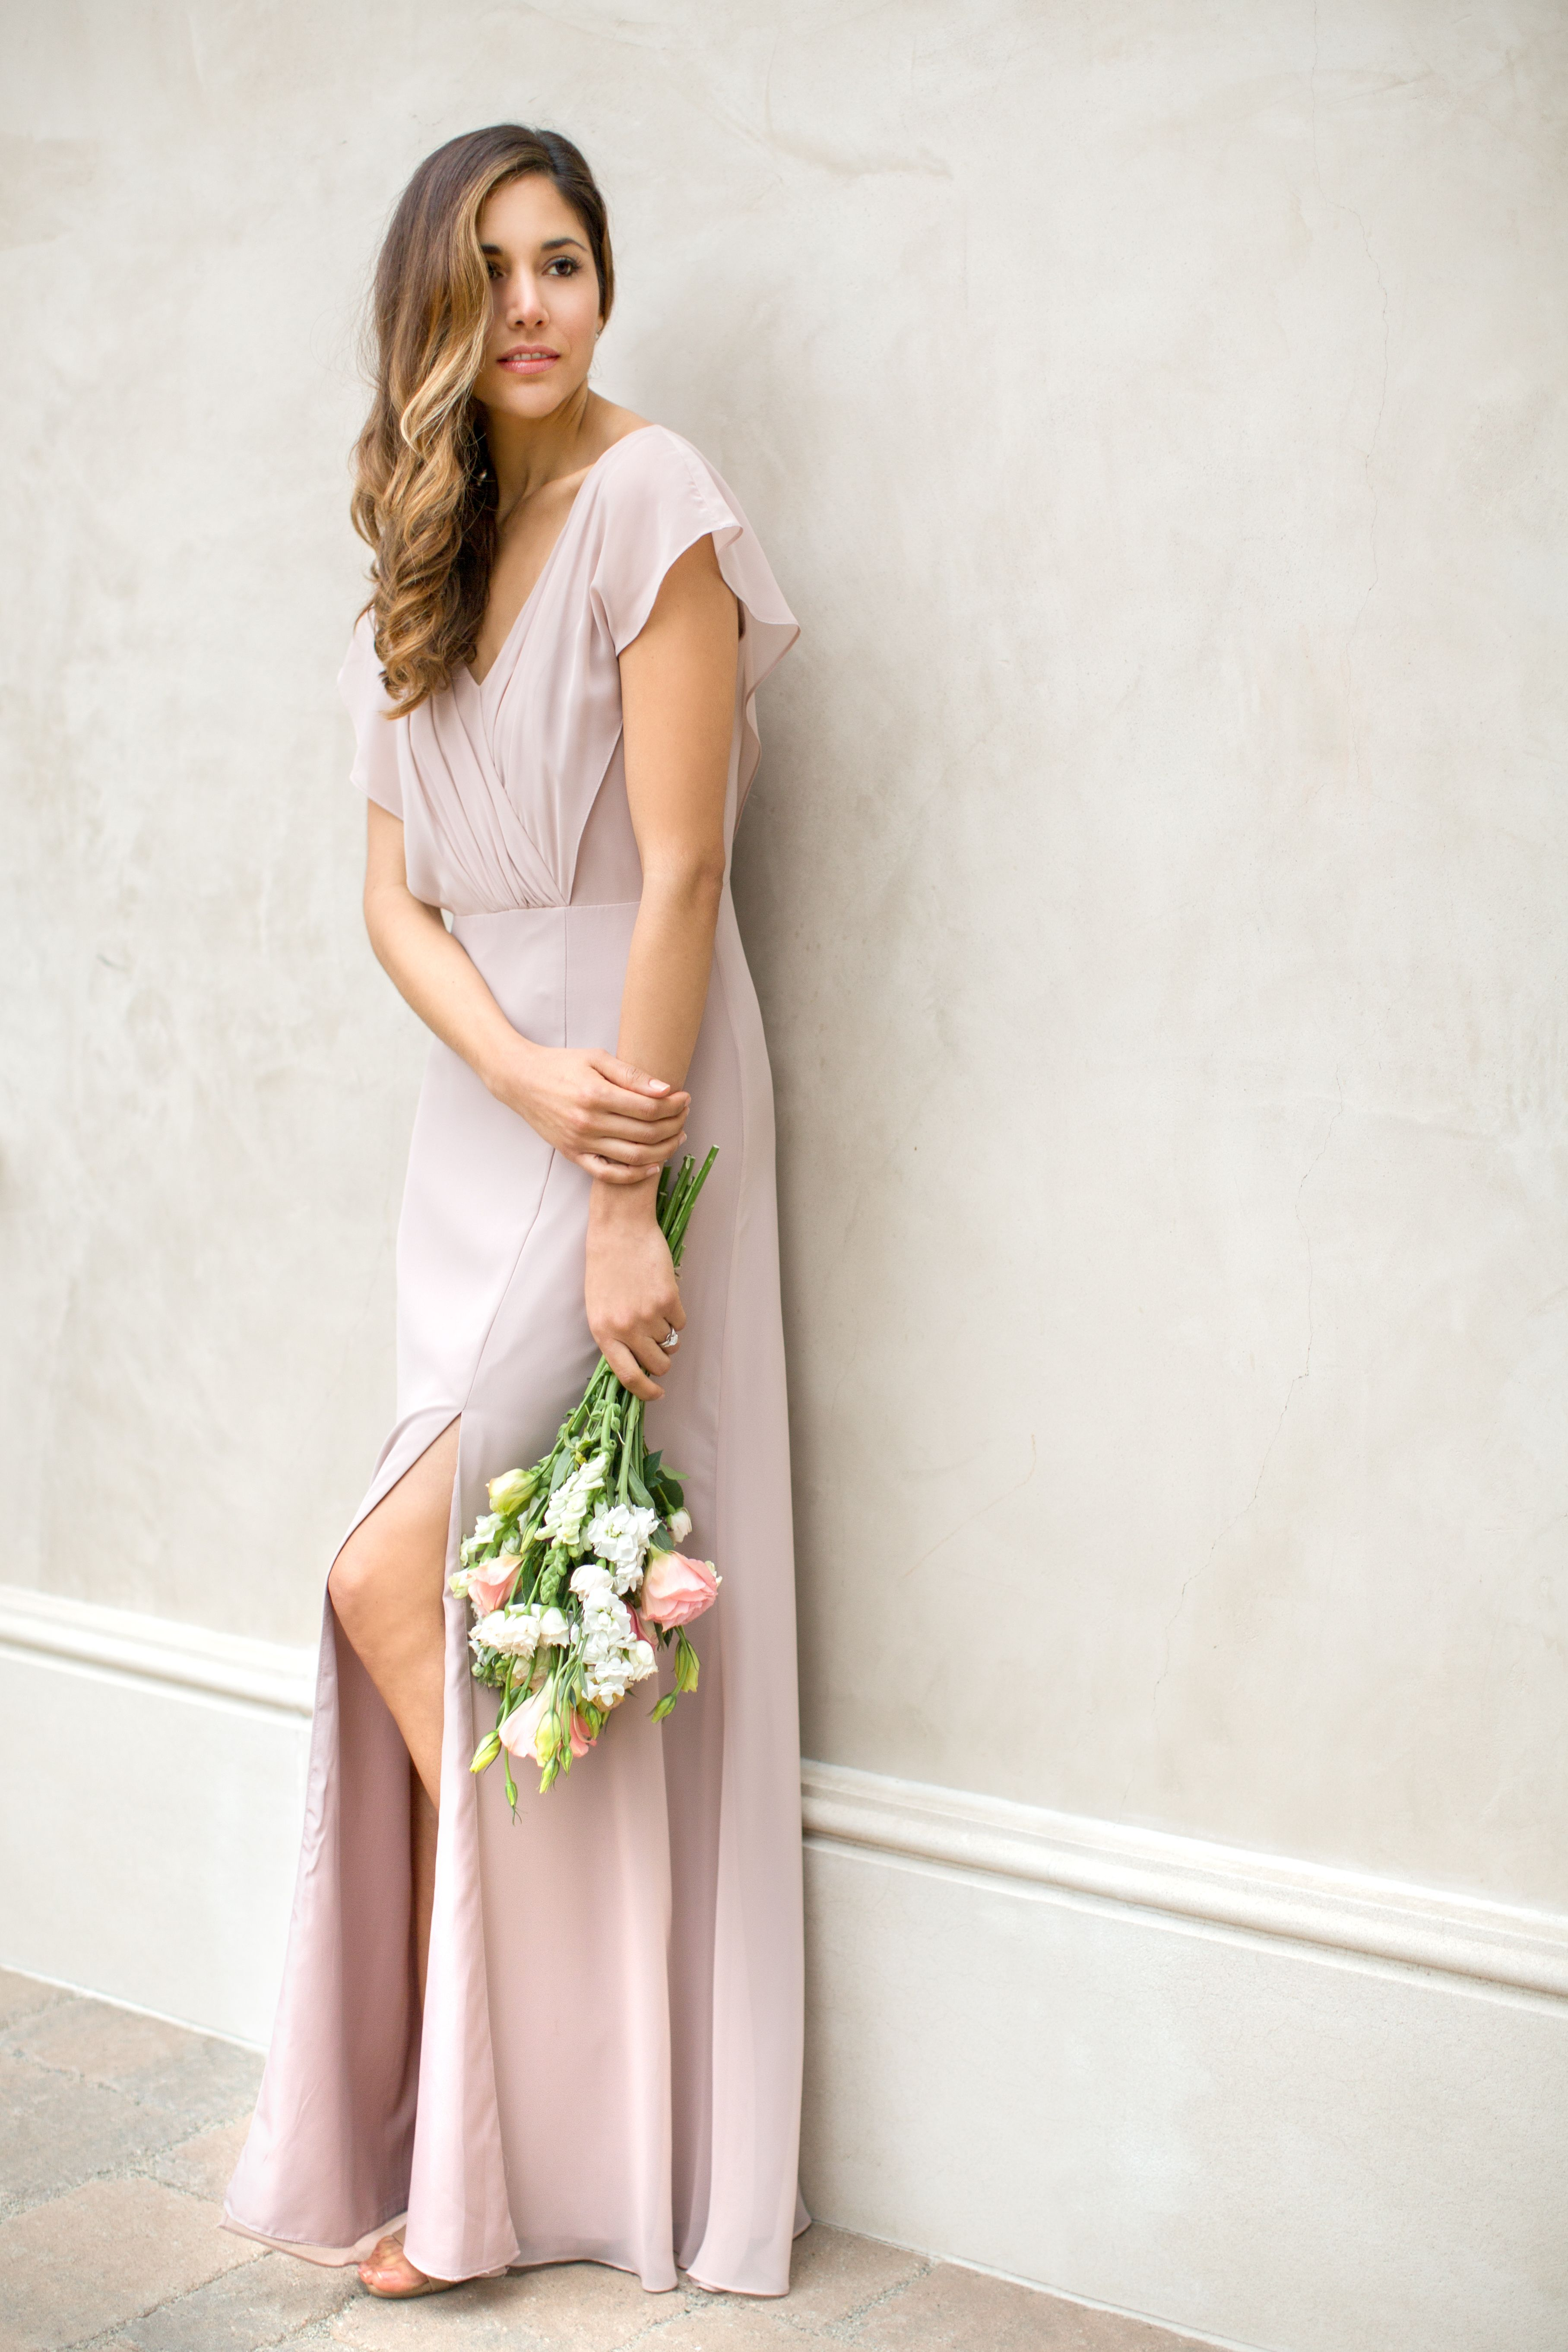 Red carpet style and romance come to life in this airy full a floor length sleeved chiffon bridesmaid dress with cutout back in six colors affordable designer bridesmaid dresses to buy or rent at vow to be chic ombrellifo Images